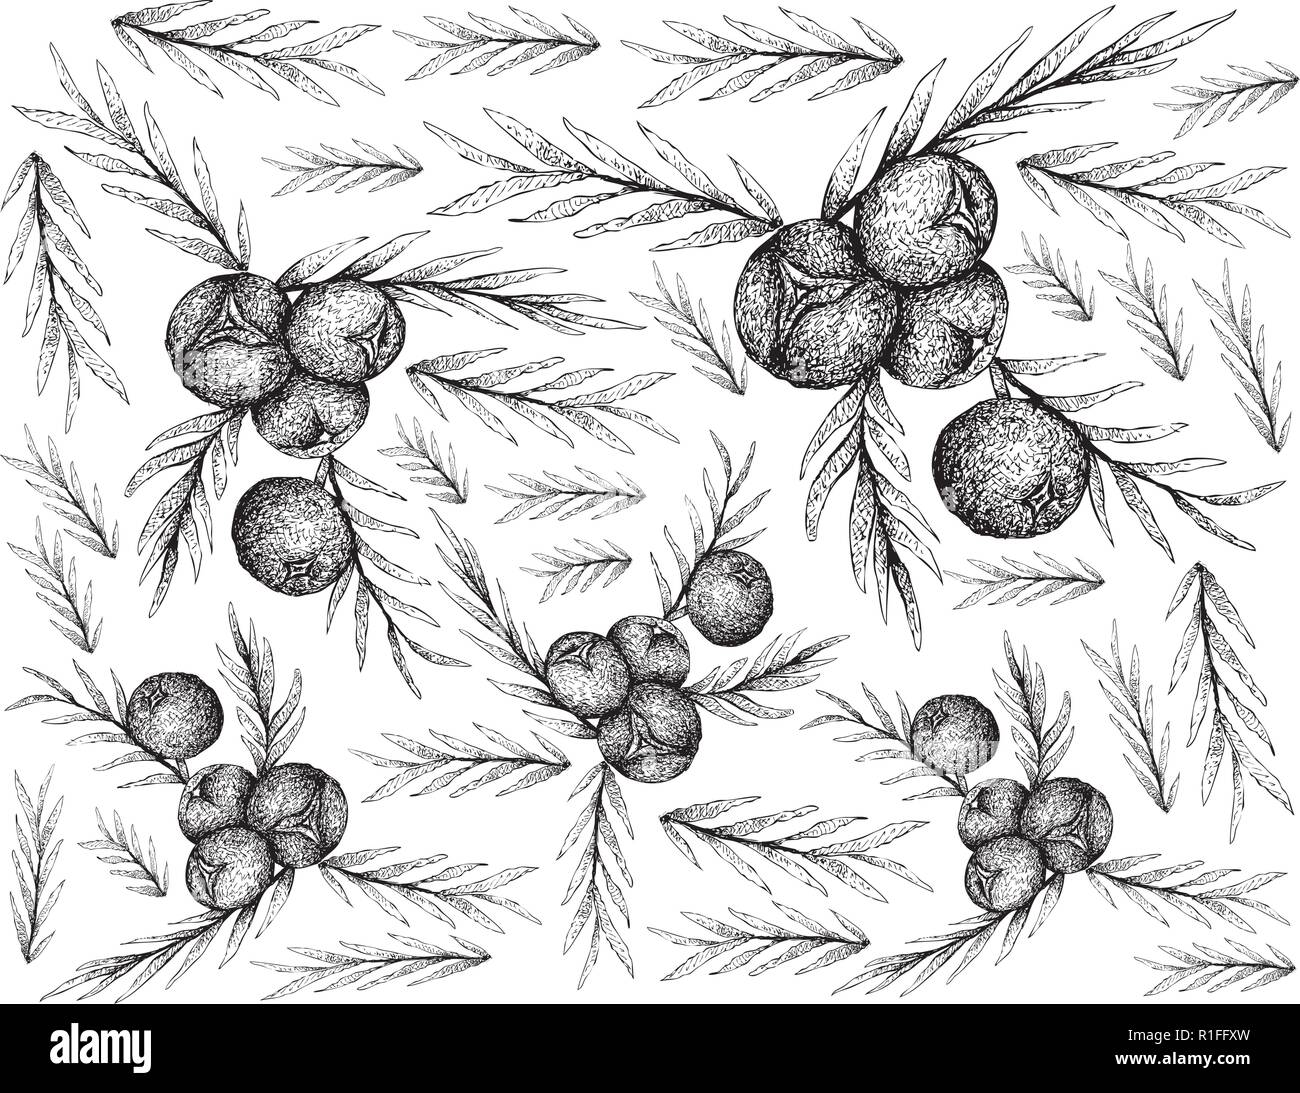 Berry Fruit, Illustration Wallpaper of Hand Drawn Sketch of Juniper Berries Isolated on White Background. High in Bioflavonoids, Antioxidants and Mine - Stock Vector